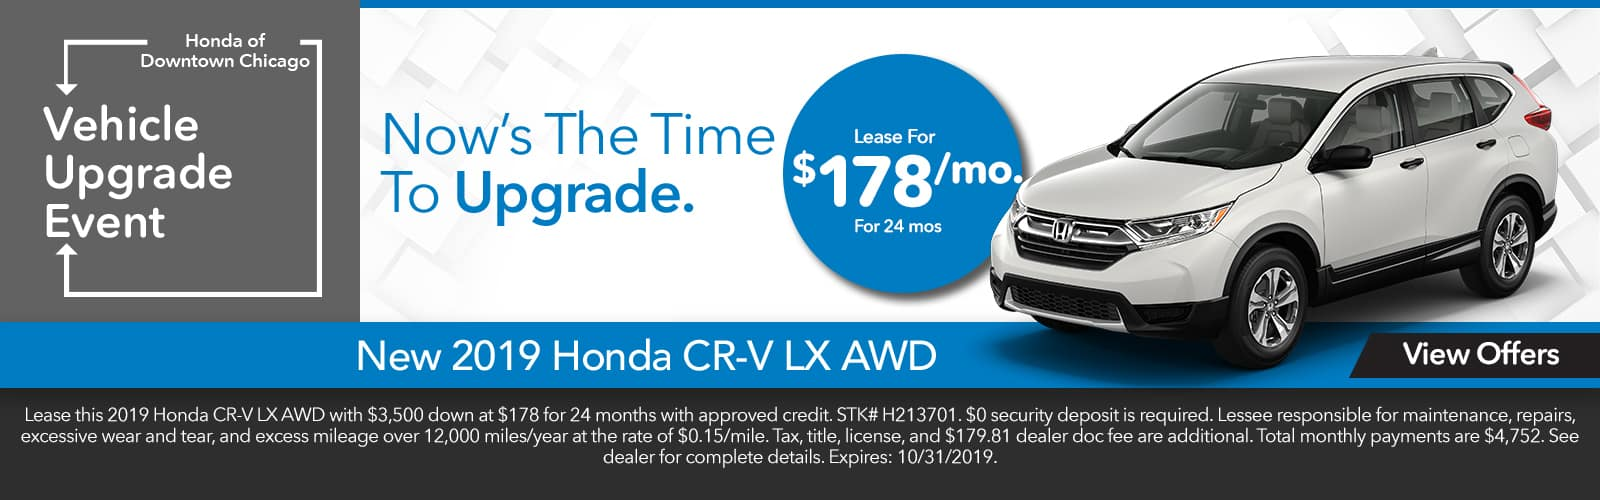 Honda Dealers Illinois >> Honda Of Downtown Chicago New And Pre Owned Car Dealer